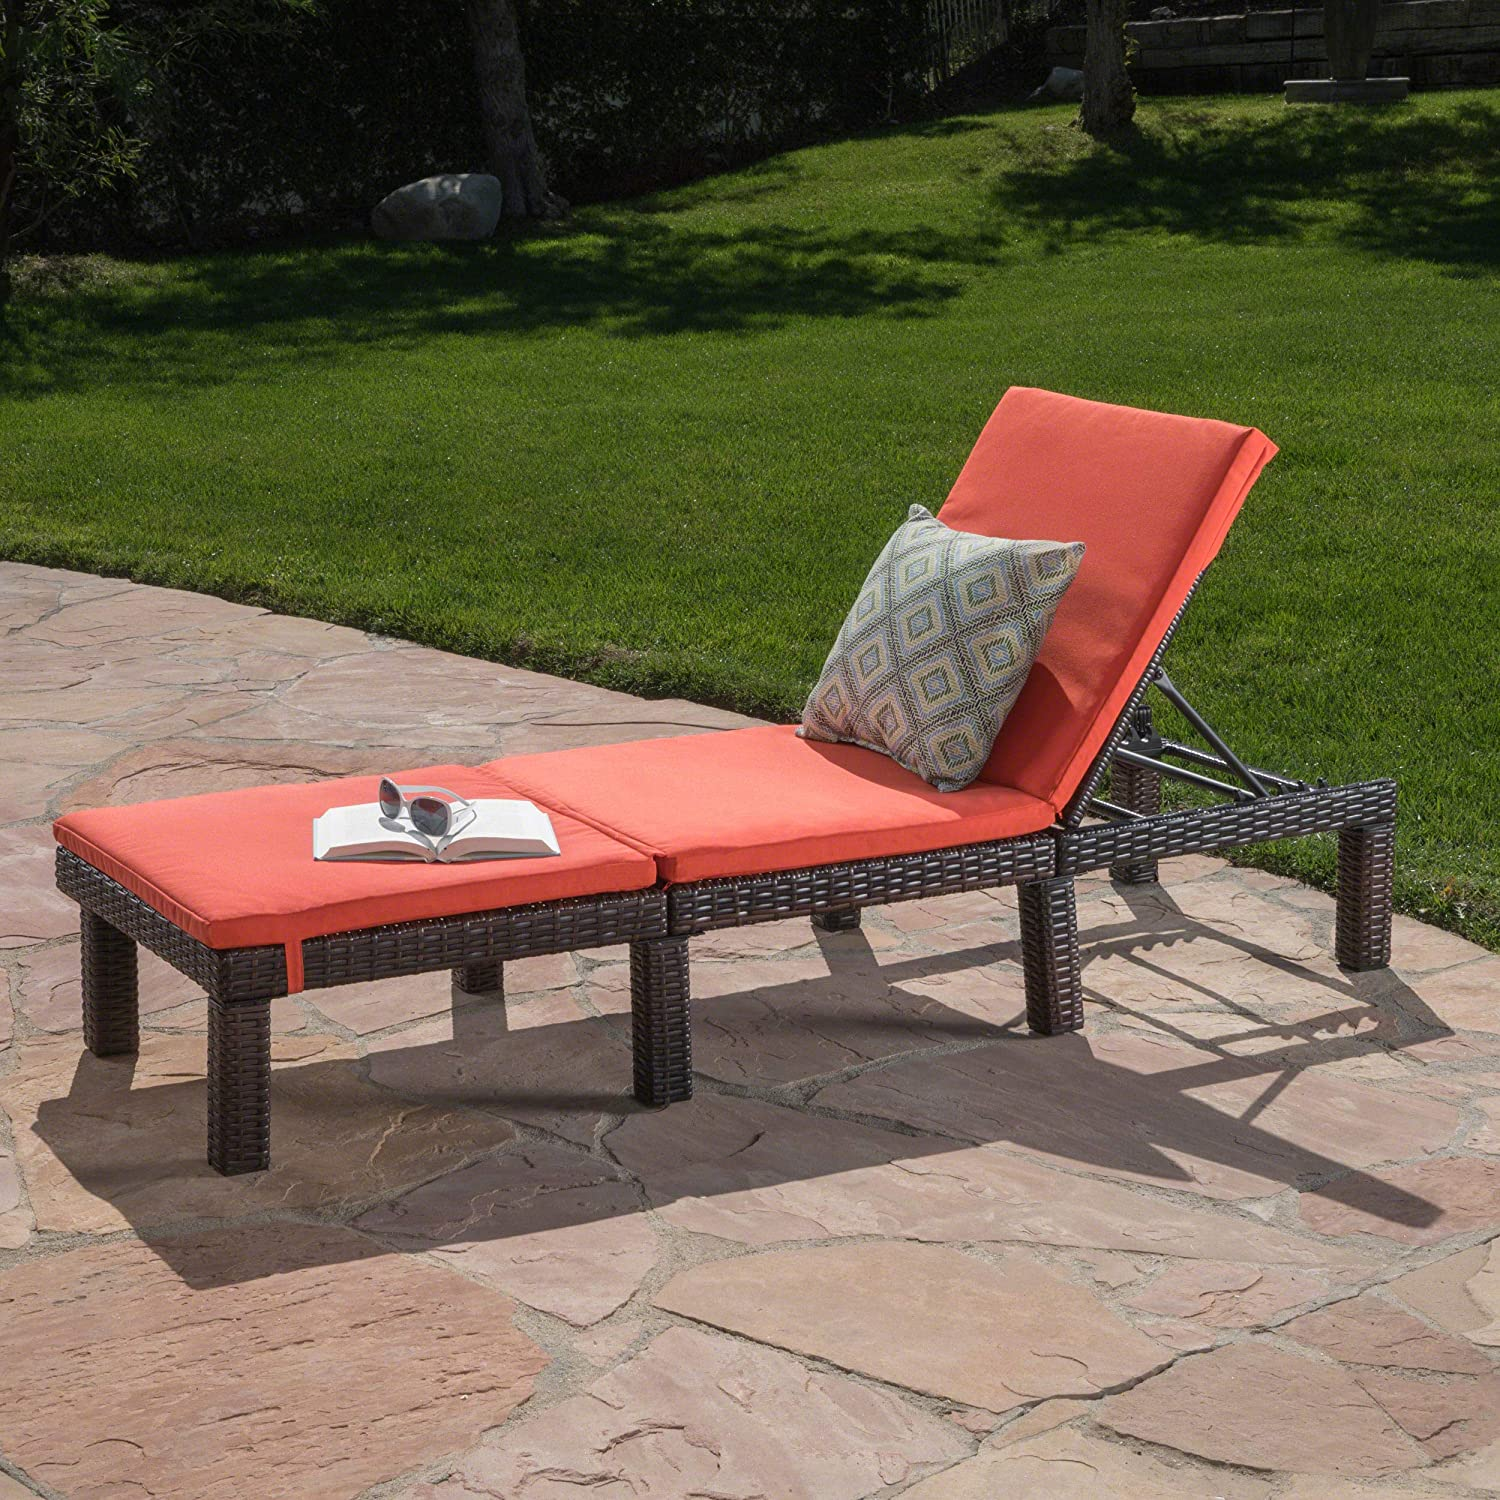 Amazon.com: Great Deal Furniture Joyce Outdoor Multibrown Wicker Chaise  Lounge with Orange Water Resistant Cushion: Garden & Outdoor - Amazon.com: Great Deal Furniture Joyce Outdoor Multibrown Wicker